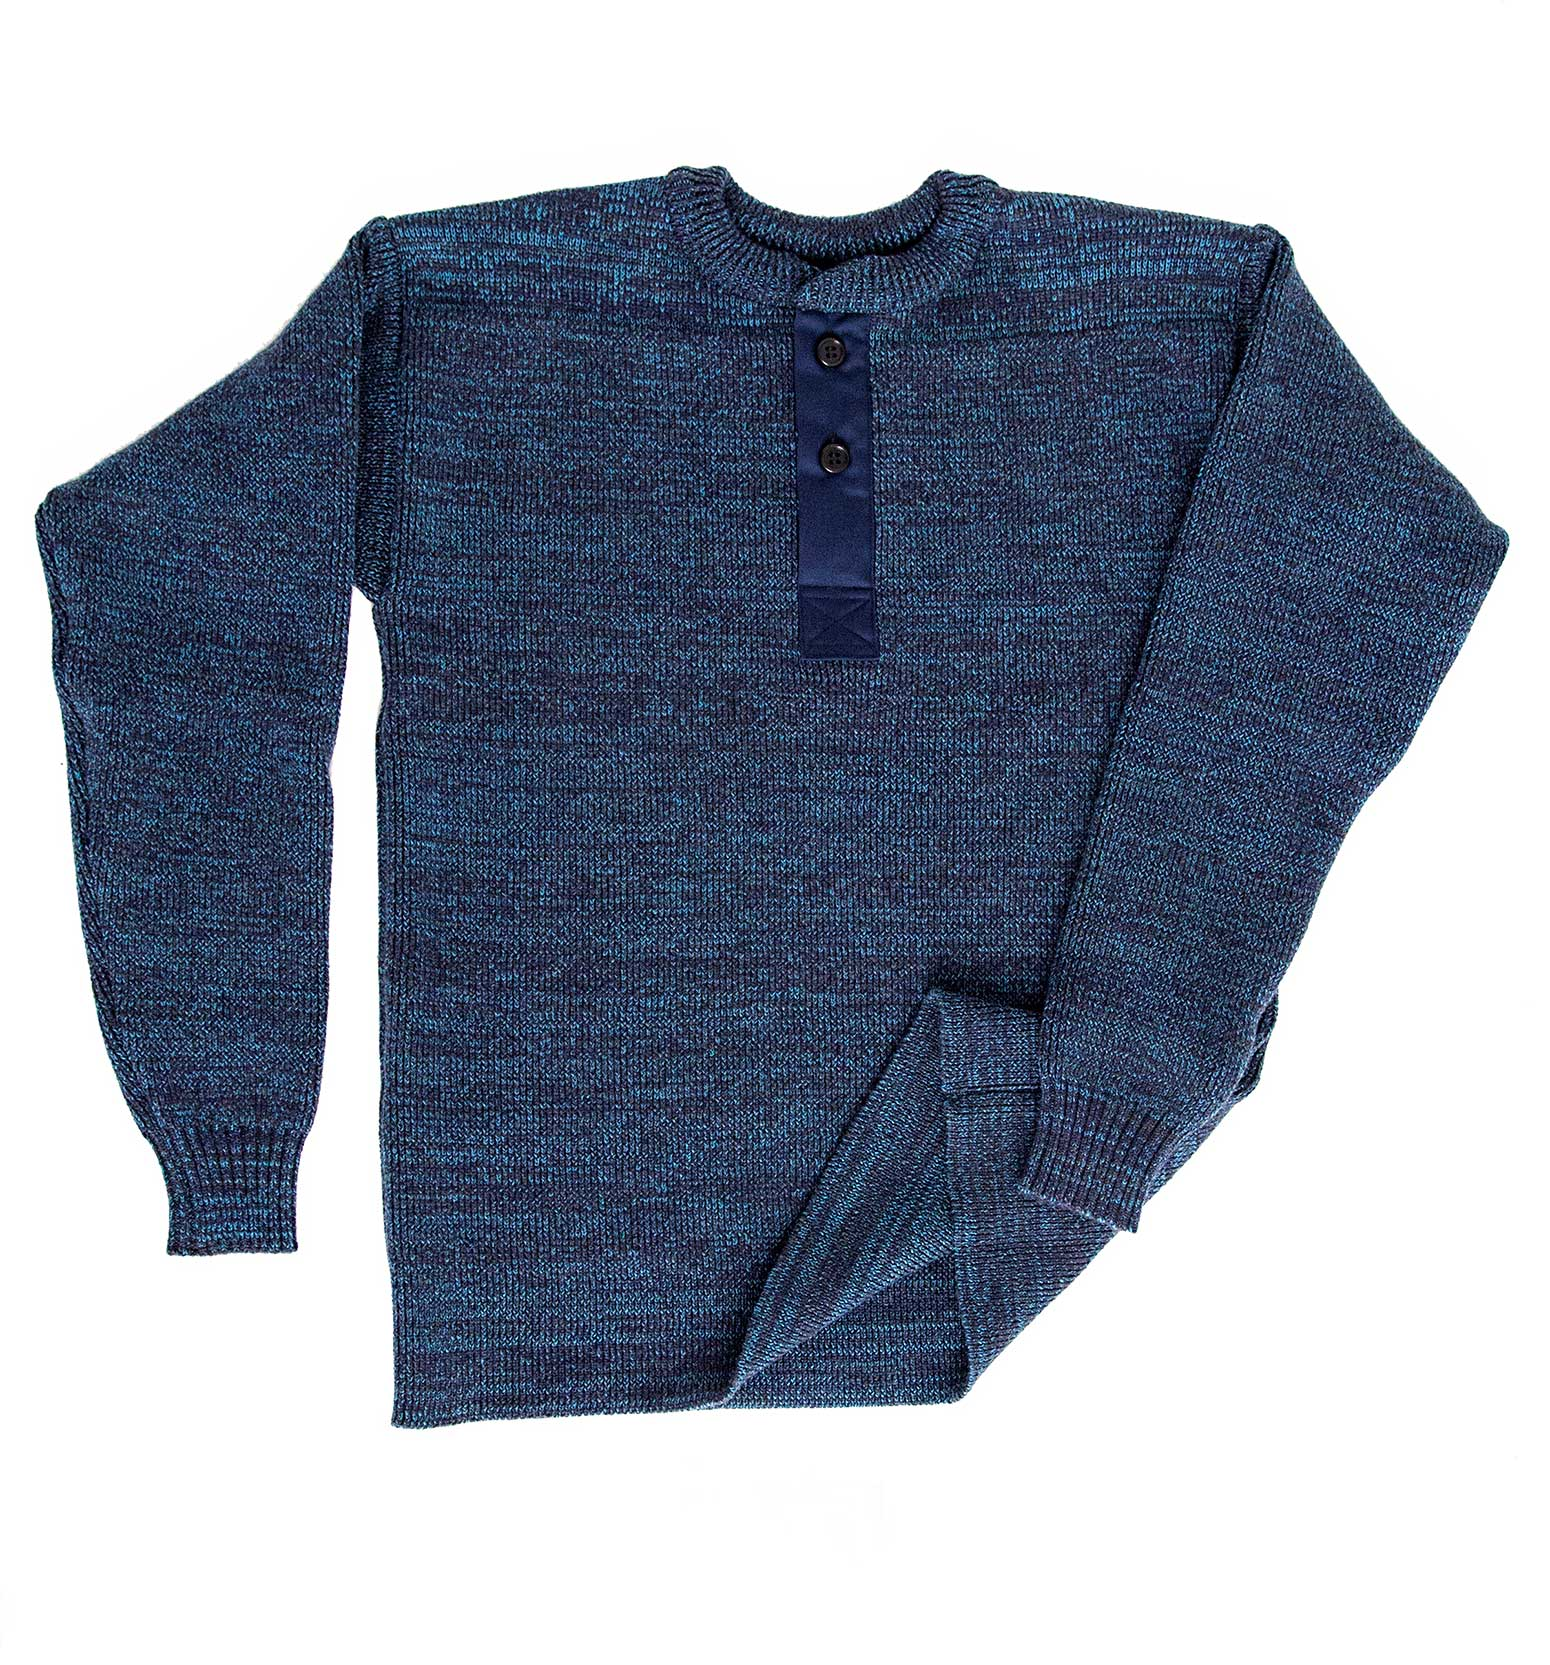 machine knit sweater